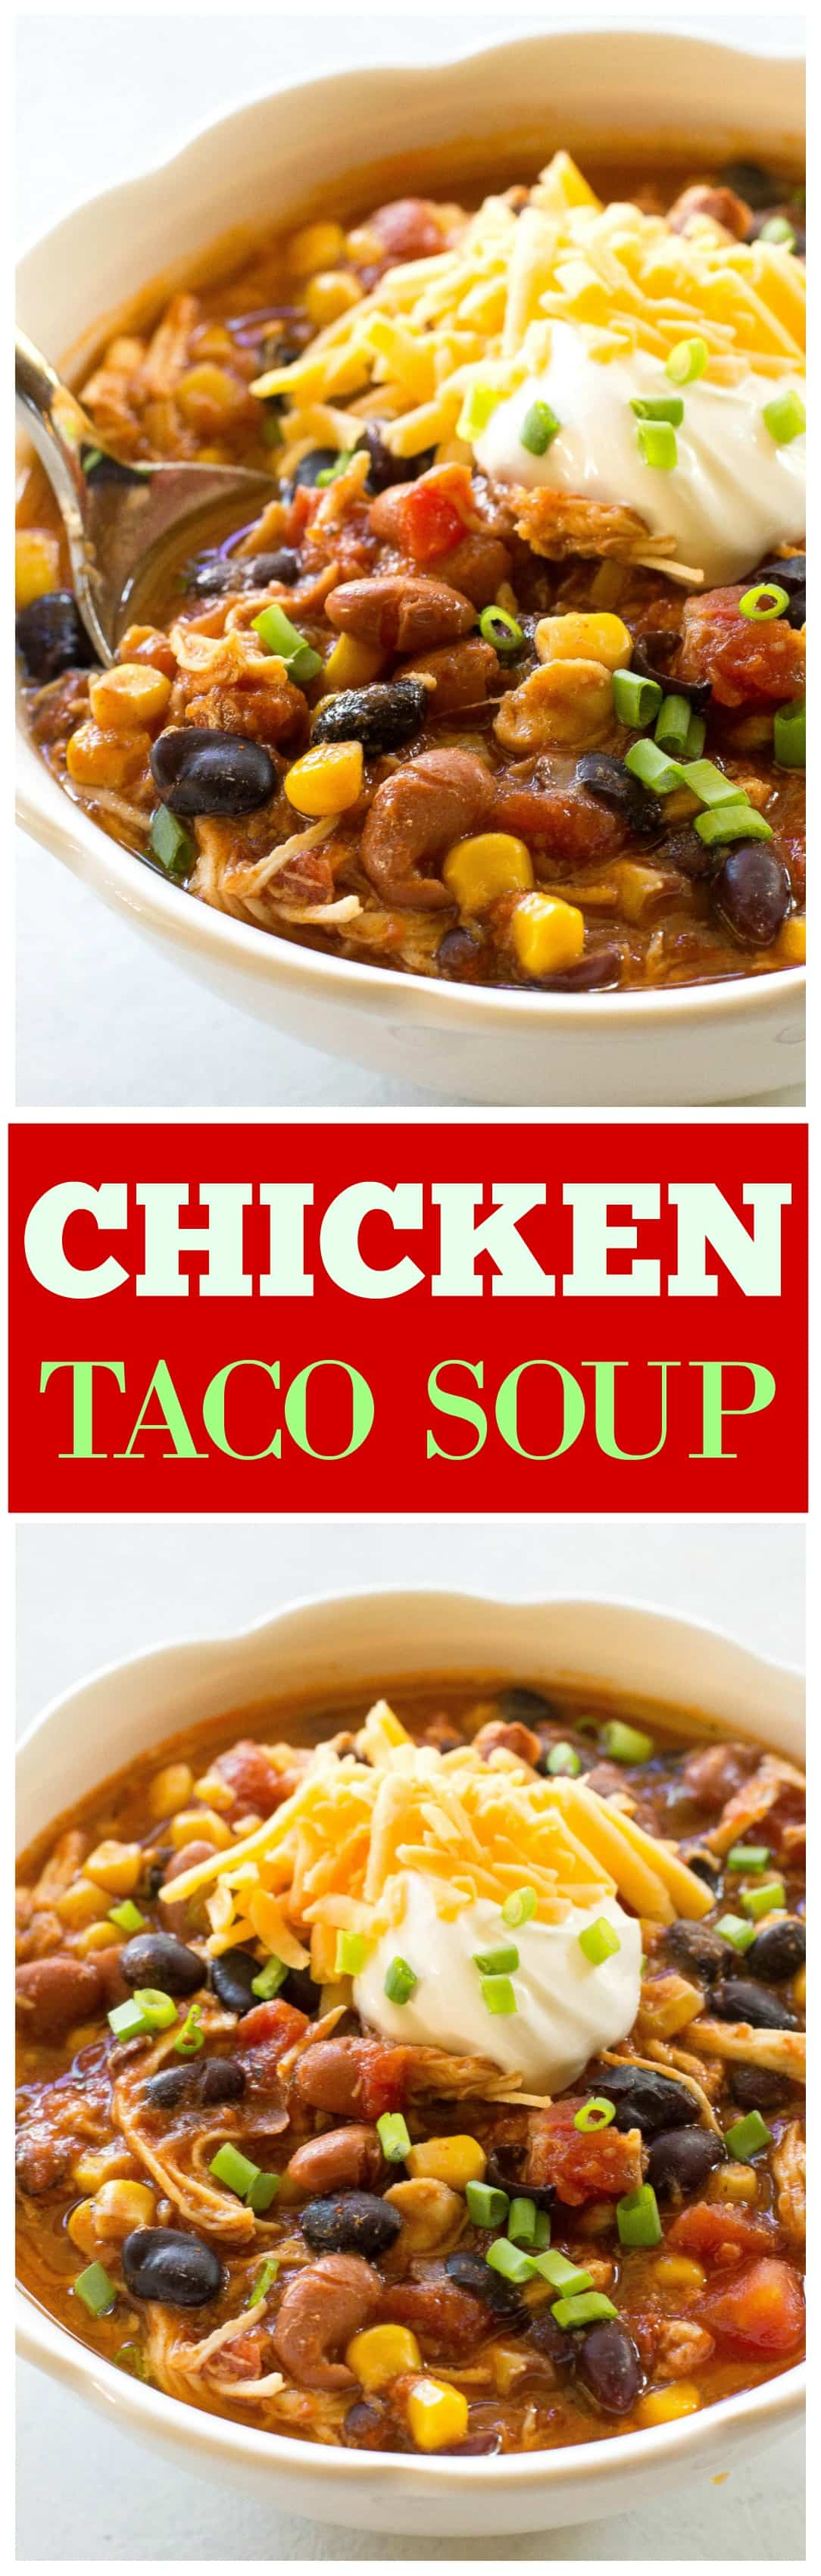 Easy Chicken Taco Soup - spicy and warm for a cold night! One of our favorite crockpot meals that can be made in the slow cooker or on the stove top. Some people call this 7 can chicken taco soup. #chicken #taco #soup #slowcooker #crockpot #dinner #recipe